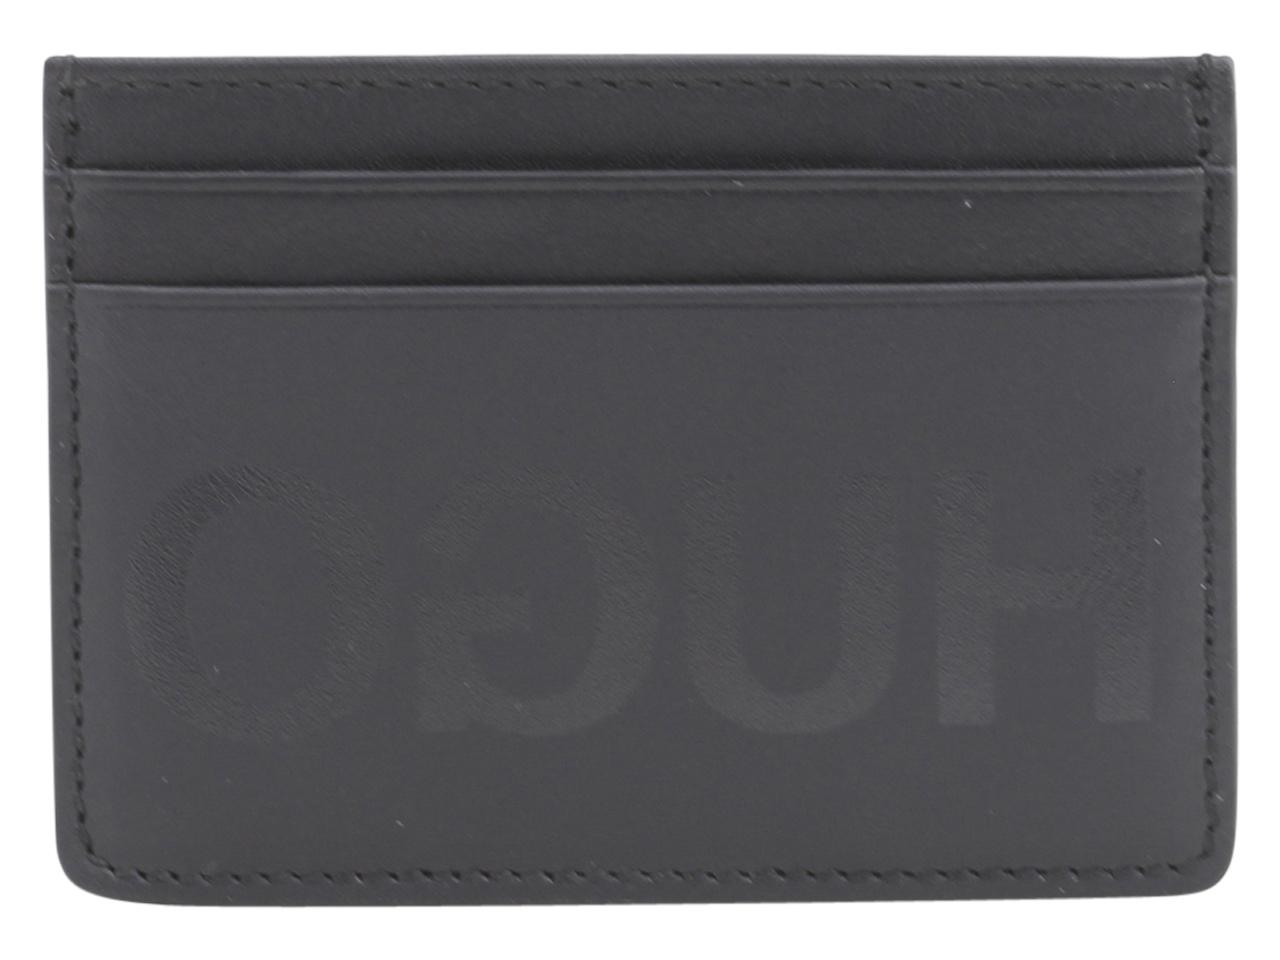 Image of Hugo Boss Men's Statement Genuine Leather Card Holder Wallet - Black